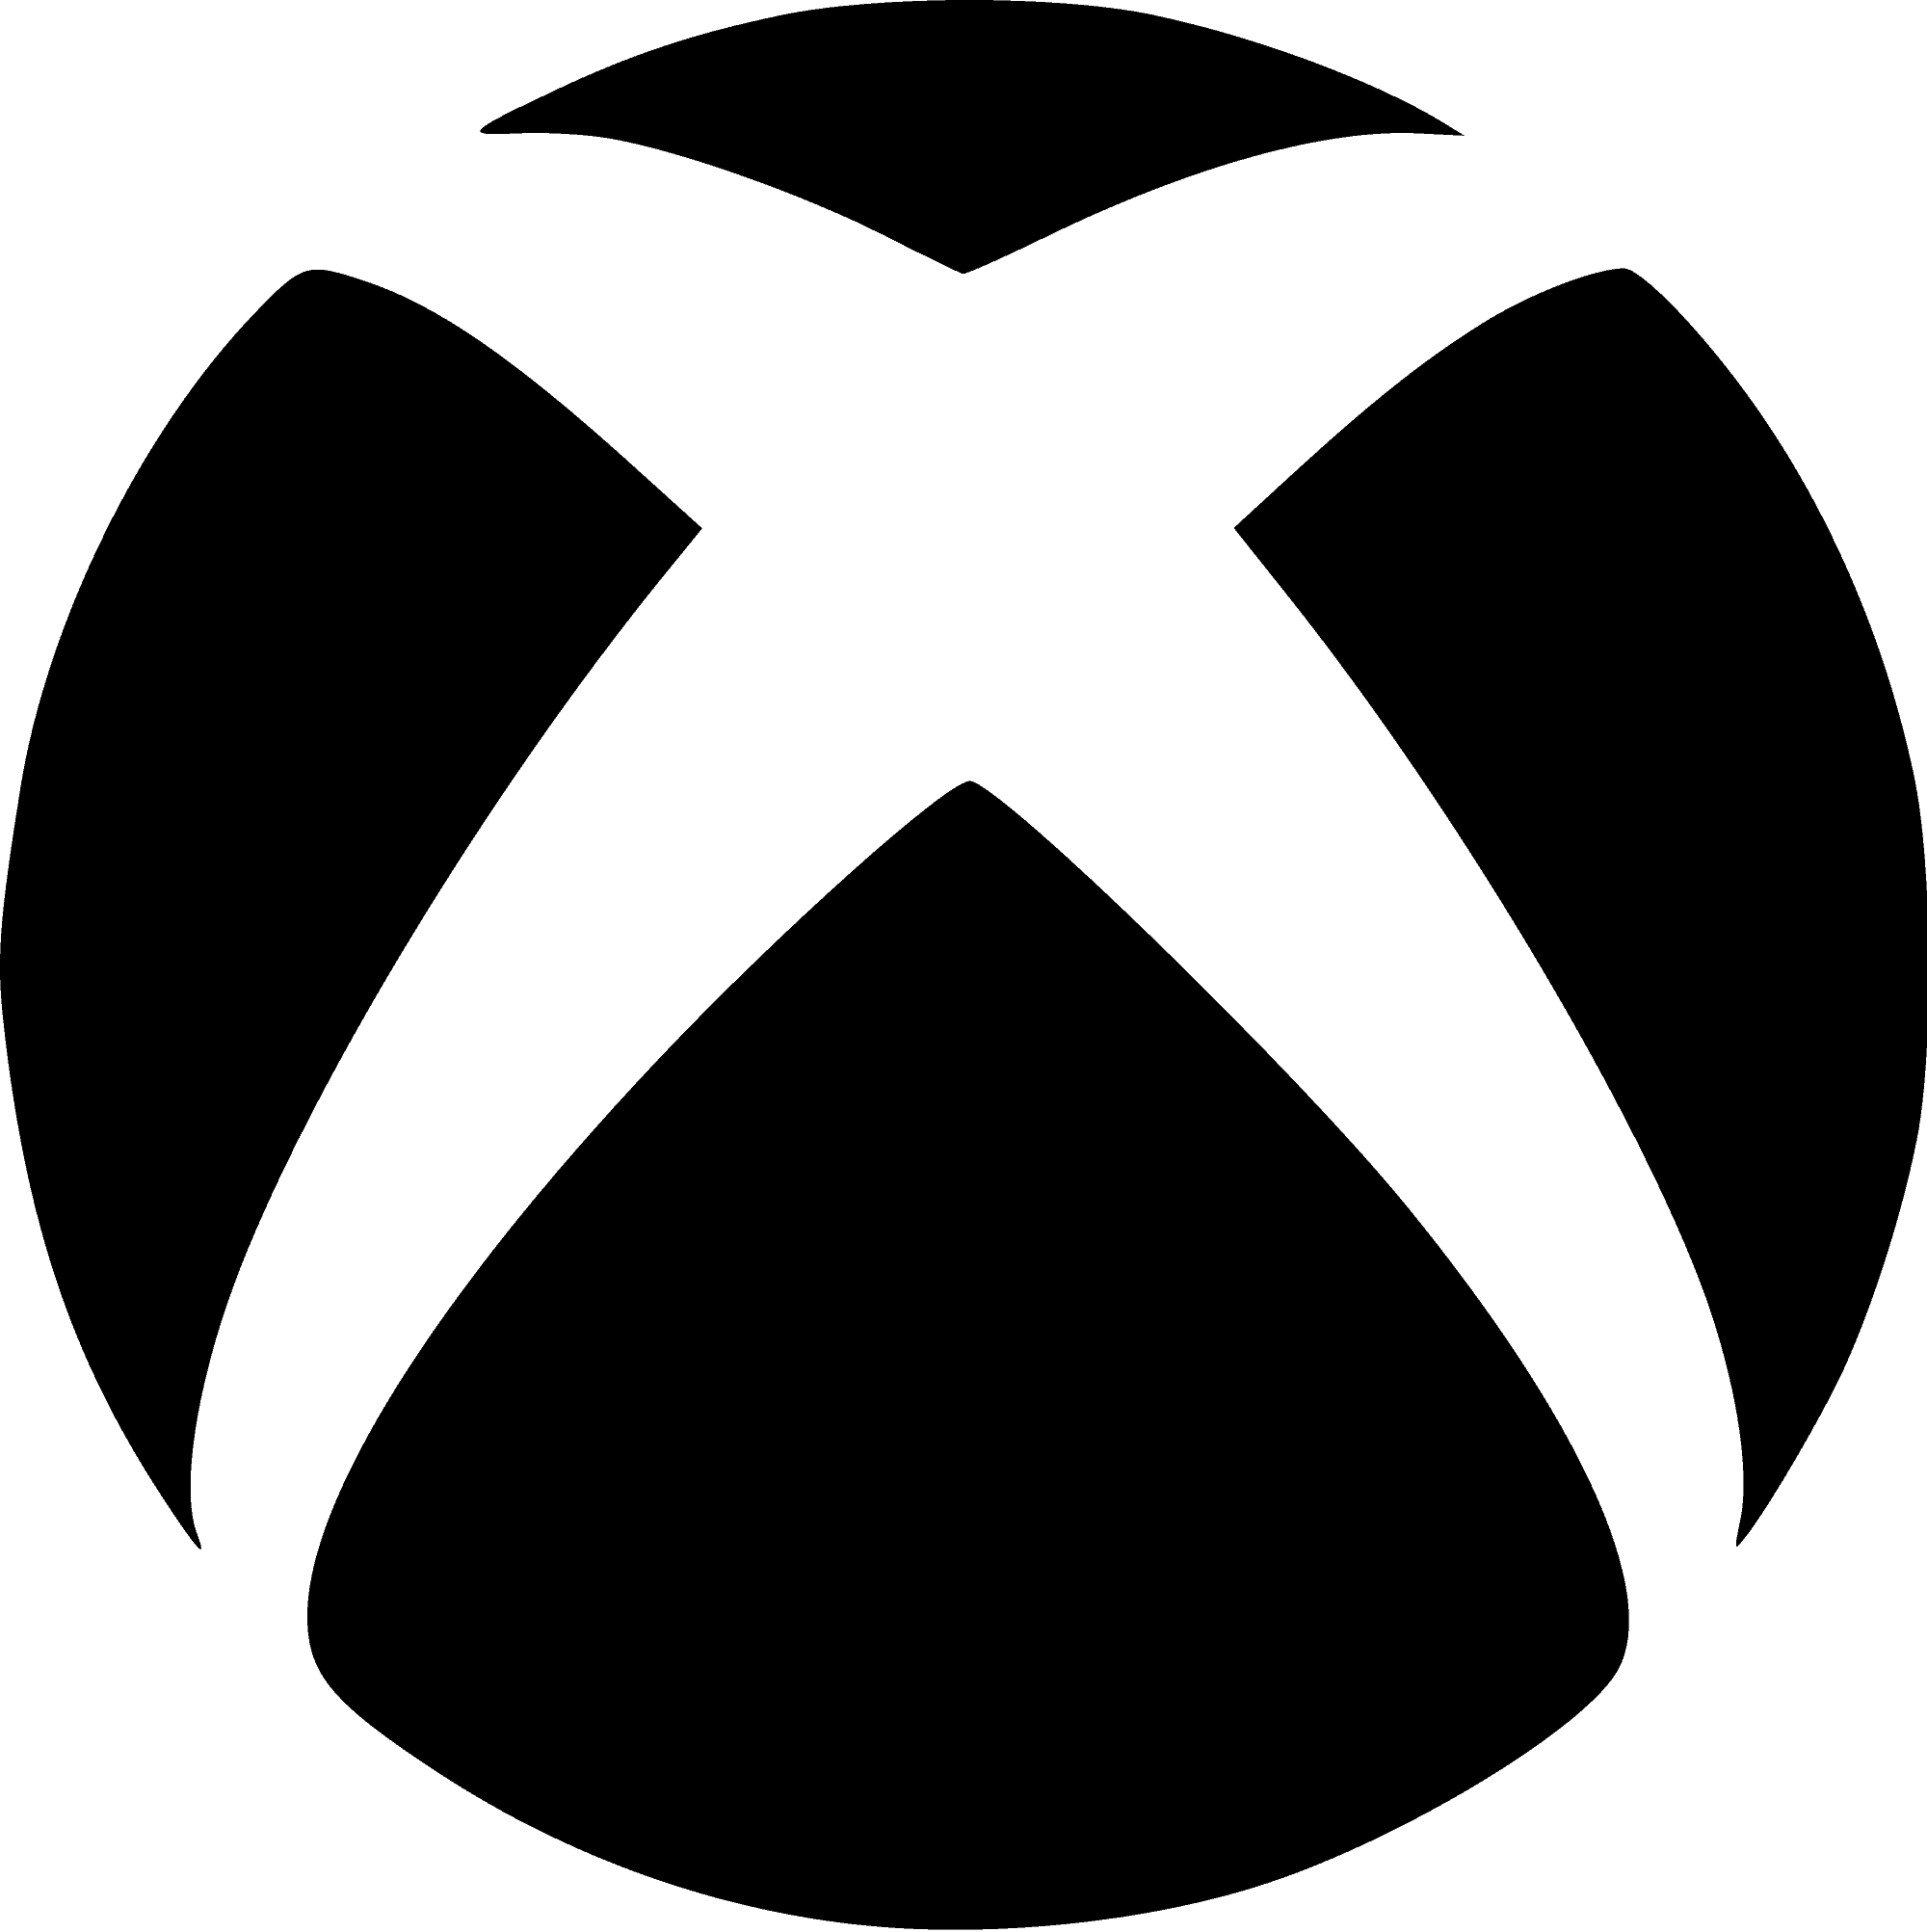 Gaming clipart xbox logo. What are digital games